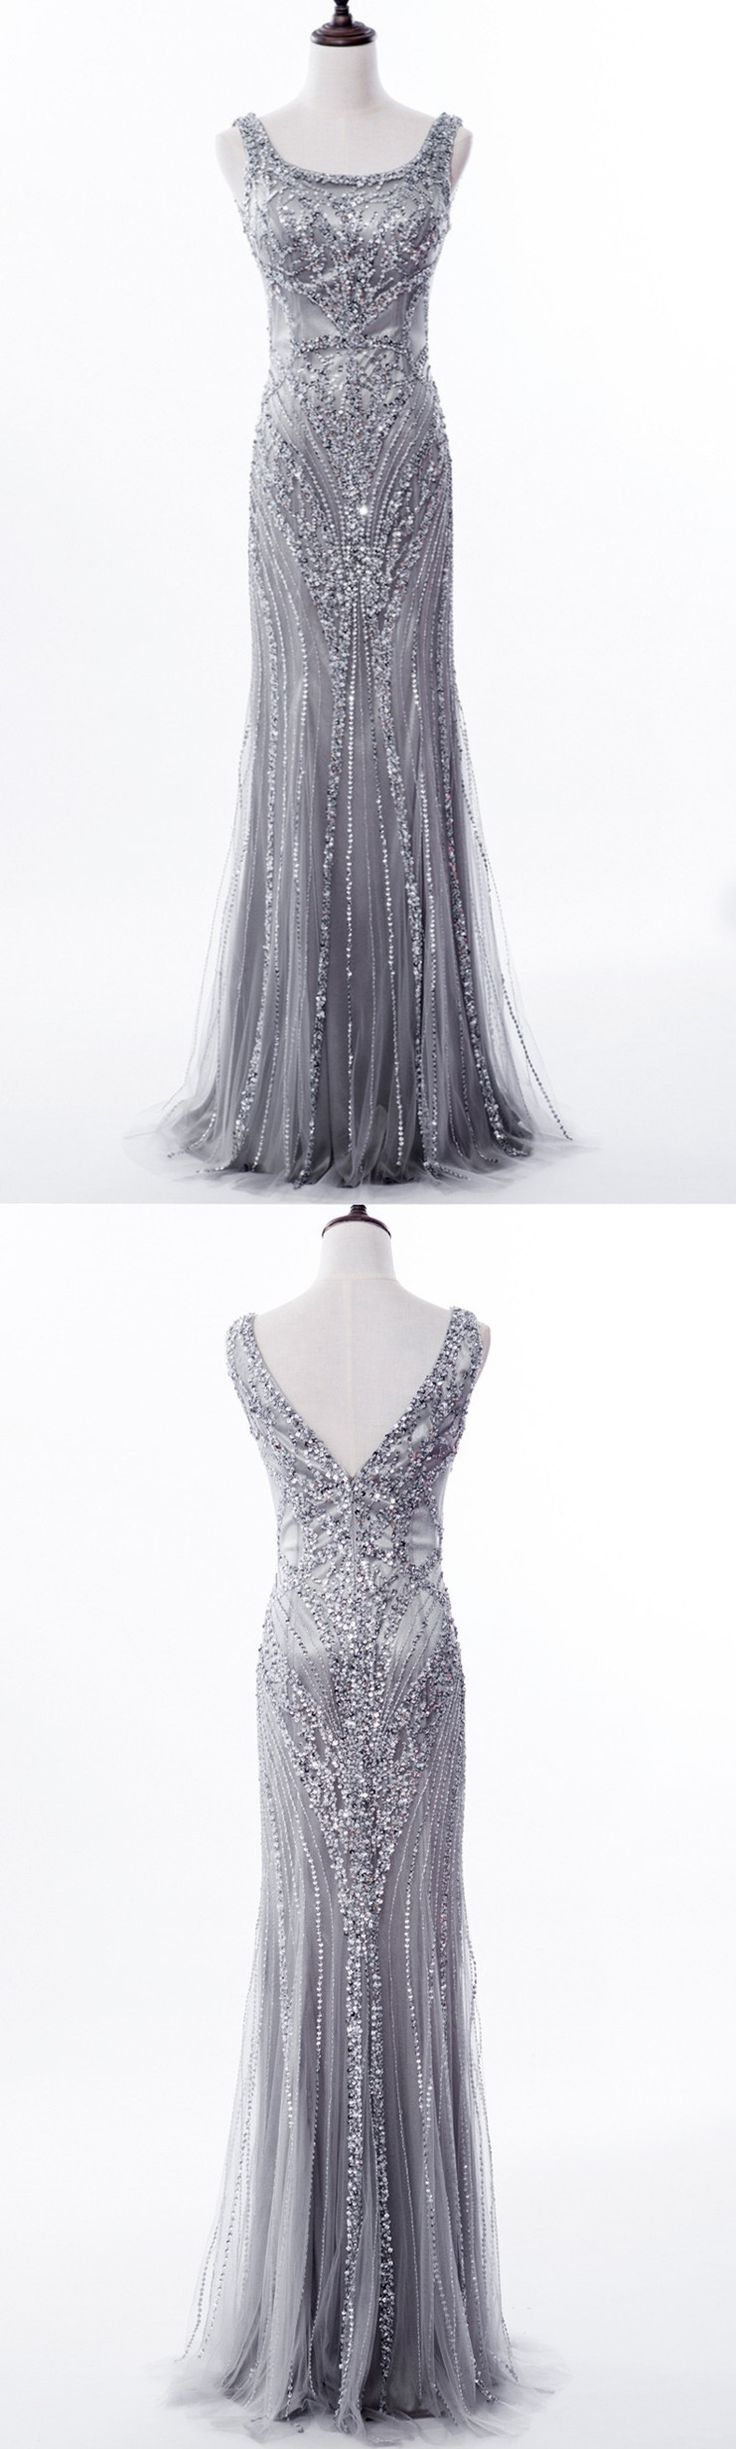 Long Prom Dresses,Grey Sequin and Beaded Embellished Floor Length Trumpet Evening Dress Featuring Sleeveless Bodice with Square Neckline